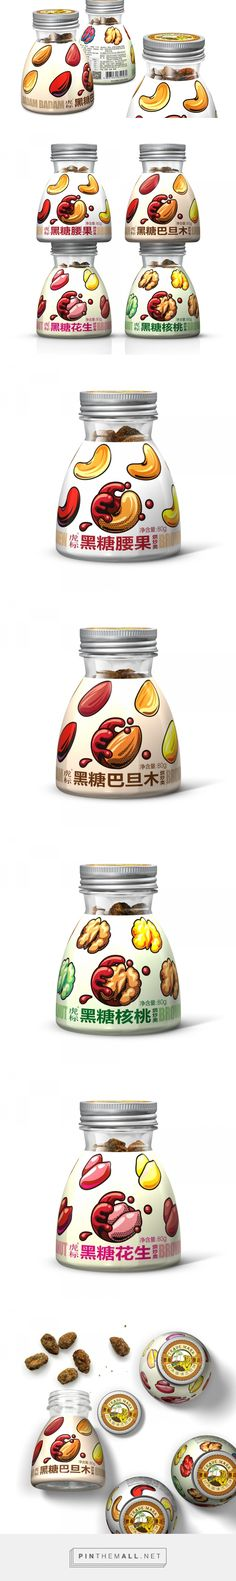 Brown Sugar Nut / Designed by Zhuang Tao